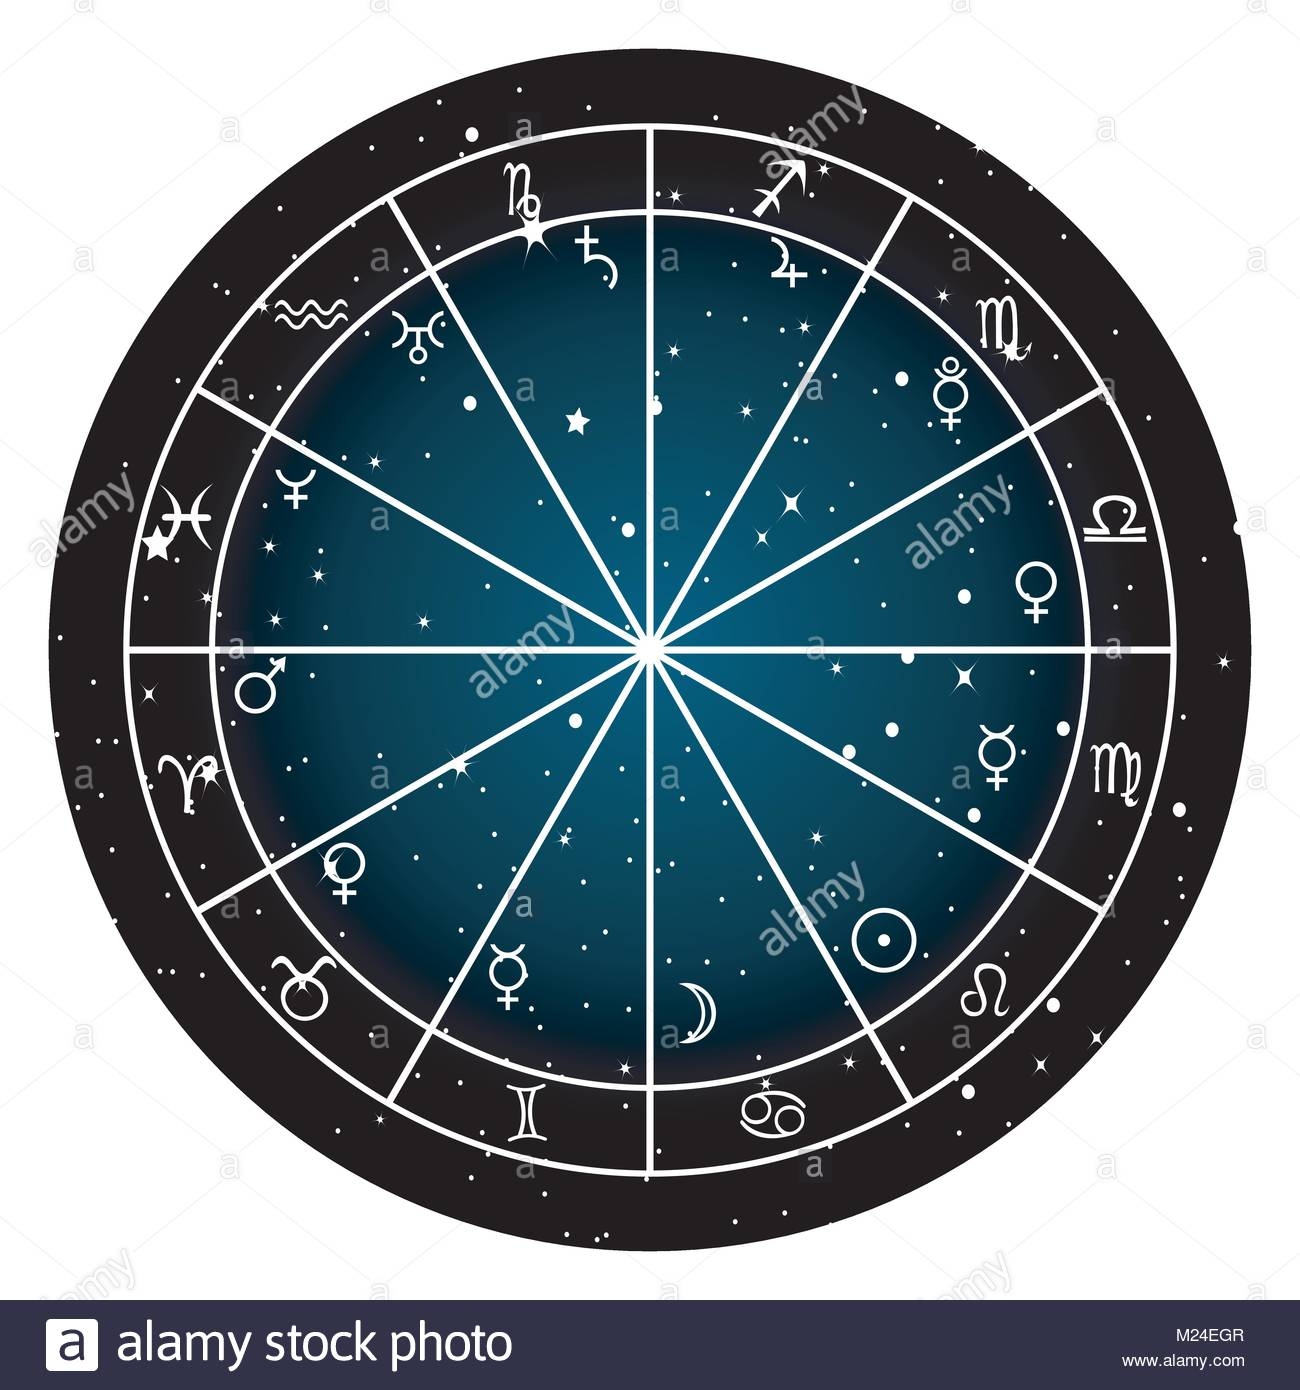 Horoscope chart stock photos horoscope chart stock images alamy astrology zodiac with natal chart zodiac signs and planets stock image nvjuhfo Gallery